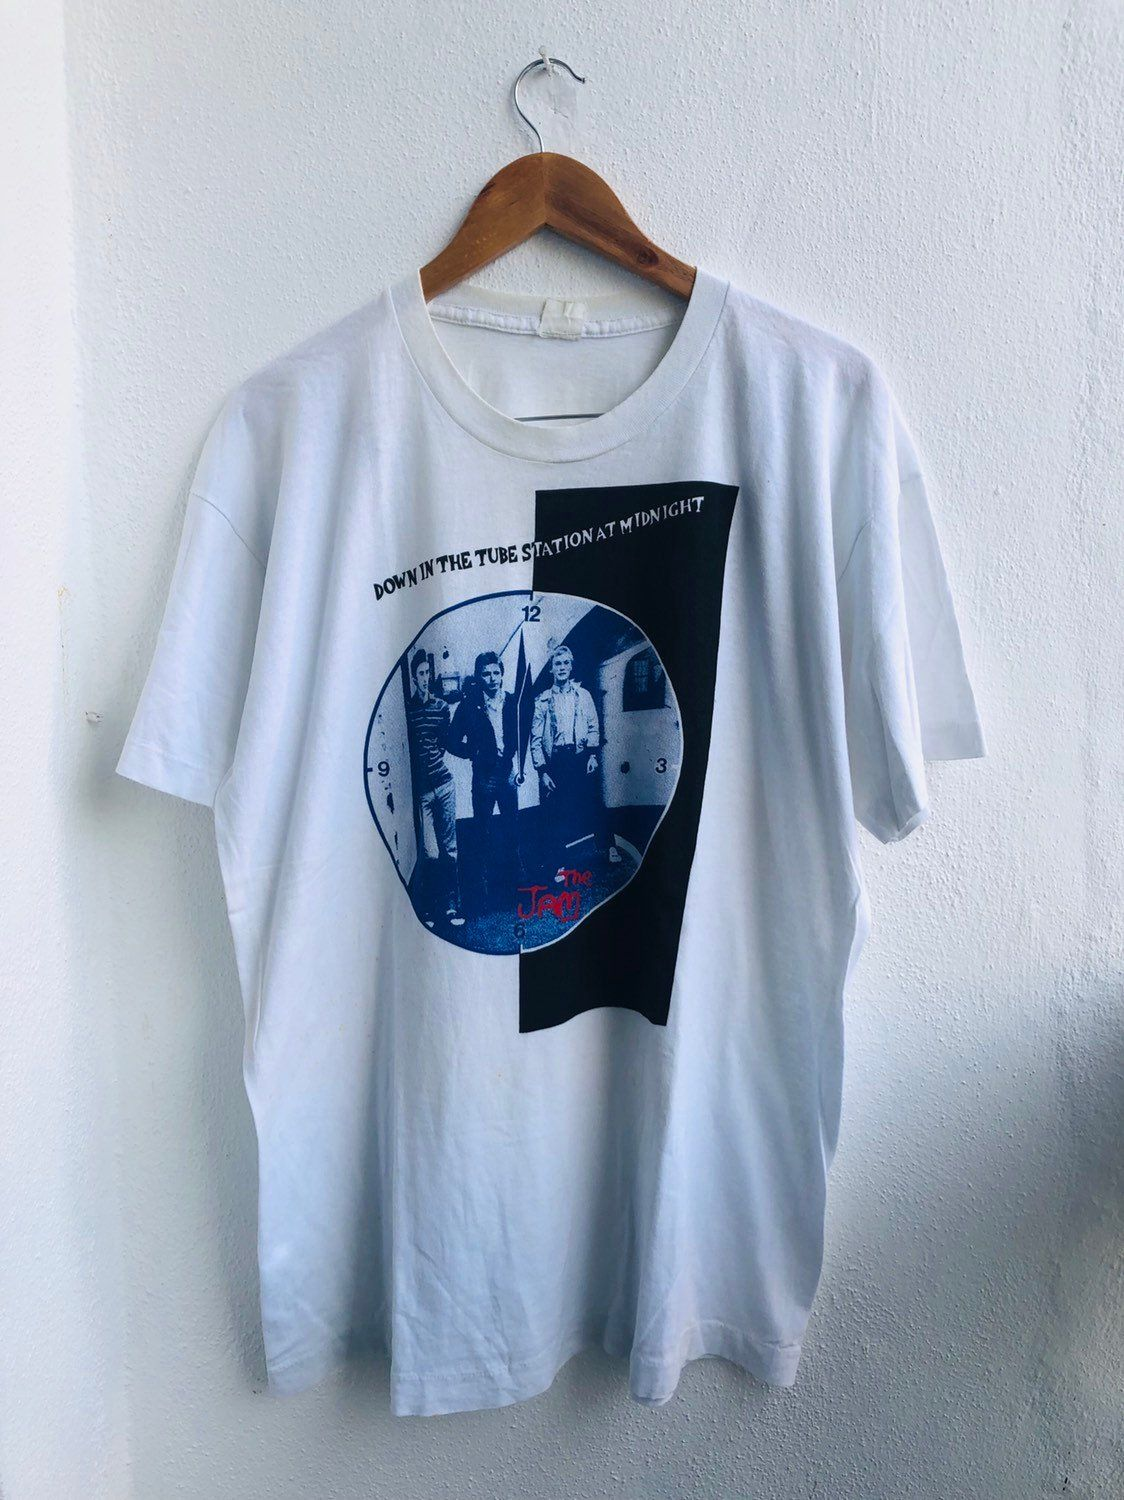 Vintage The Jams Mod Revival Down In The Tube Station Etsy Rock T Shirts Movie T Shirts Used Clothing